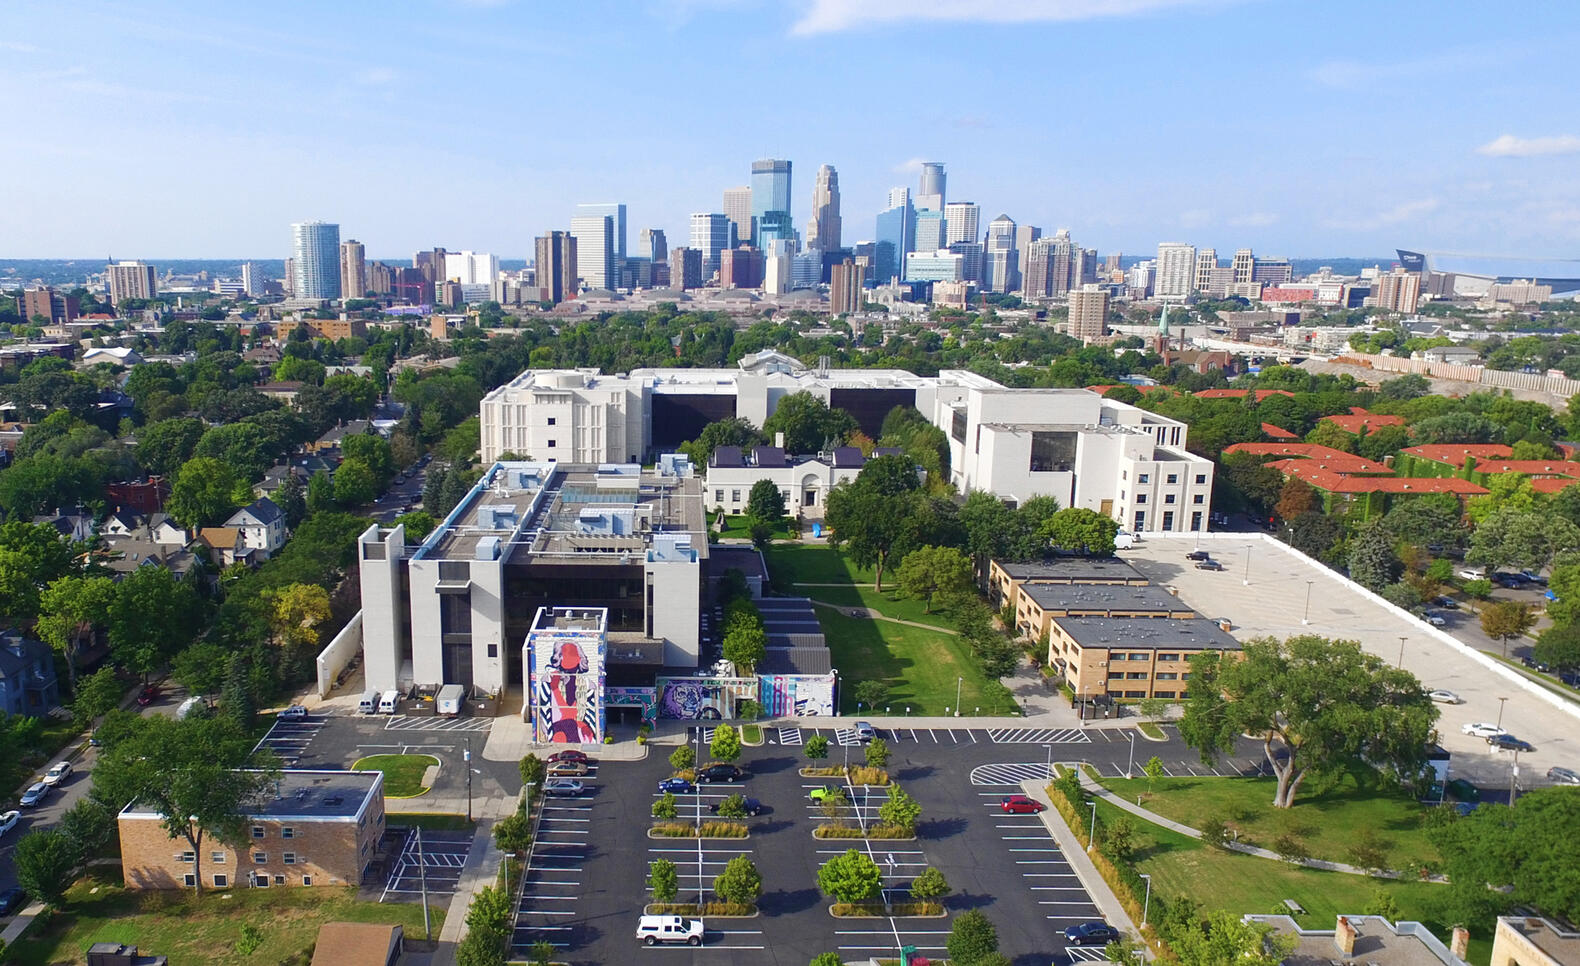 Aerial view of MCAD's campus with Mia and the minneapolis skyline in the background